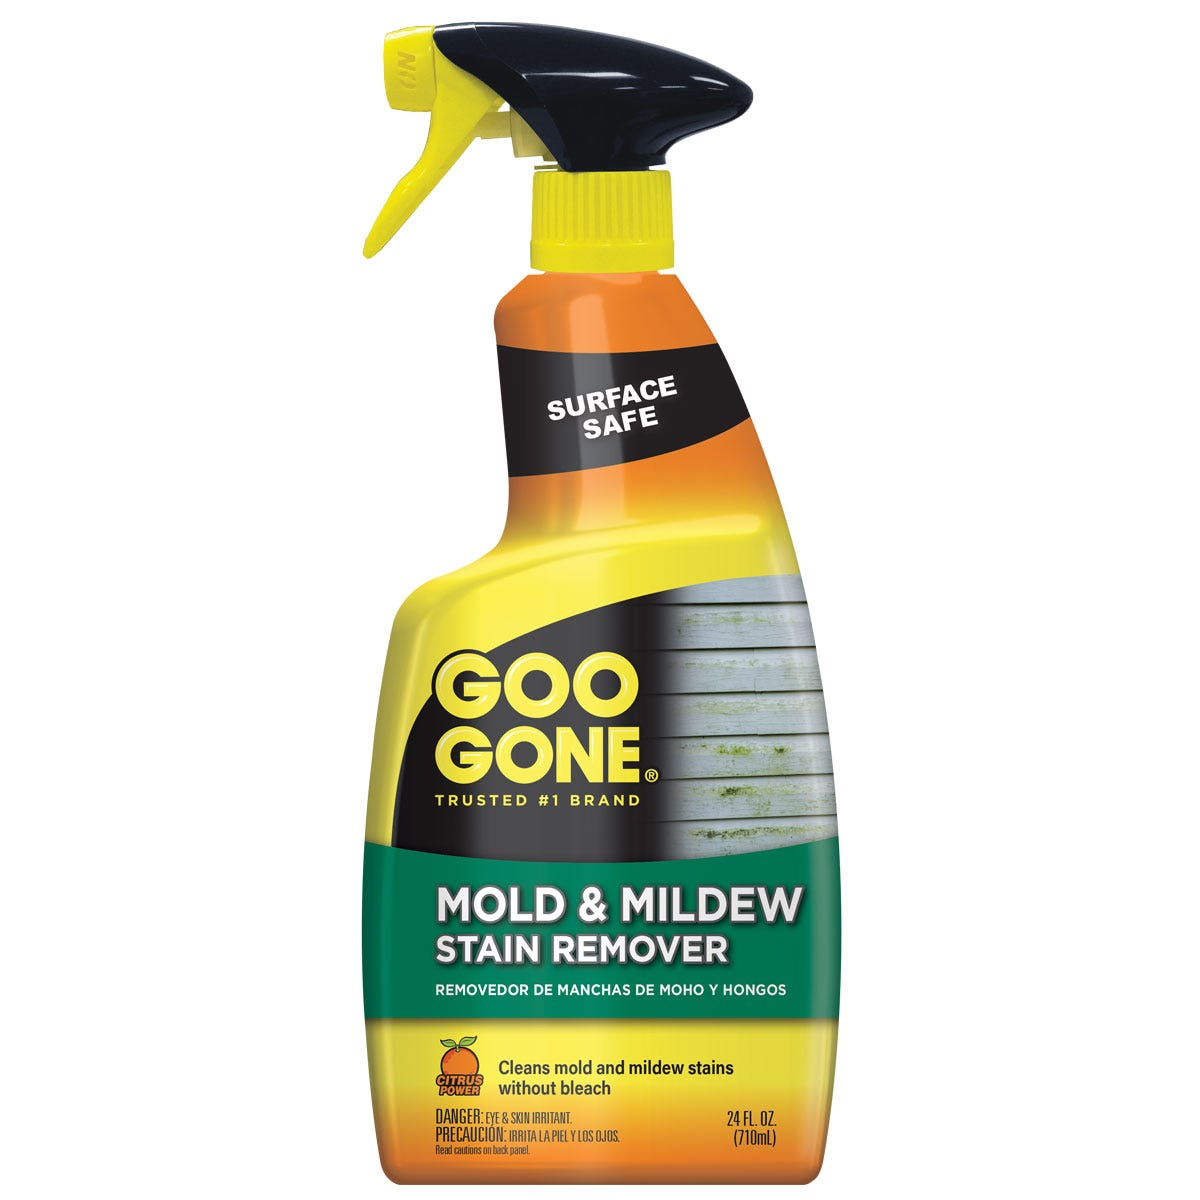 Mold & Mildew Stain Remover